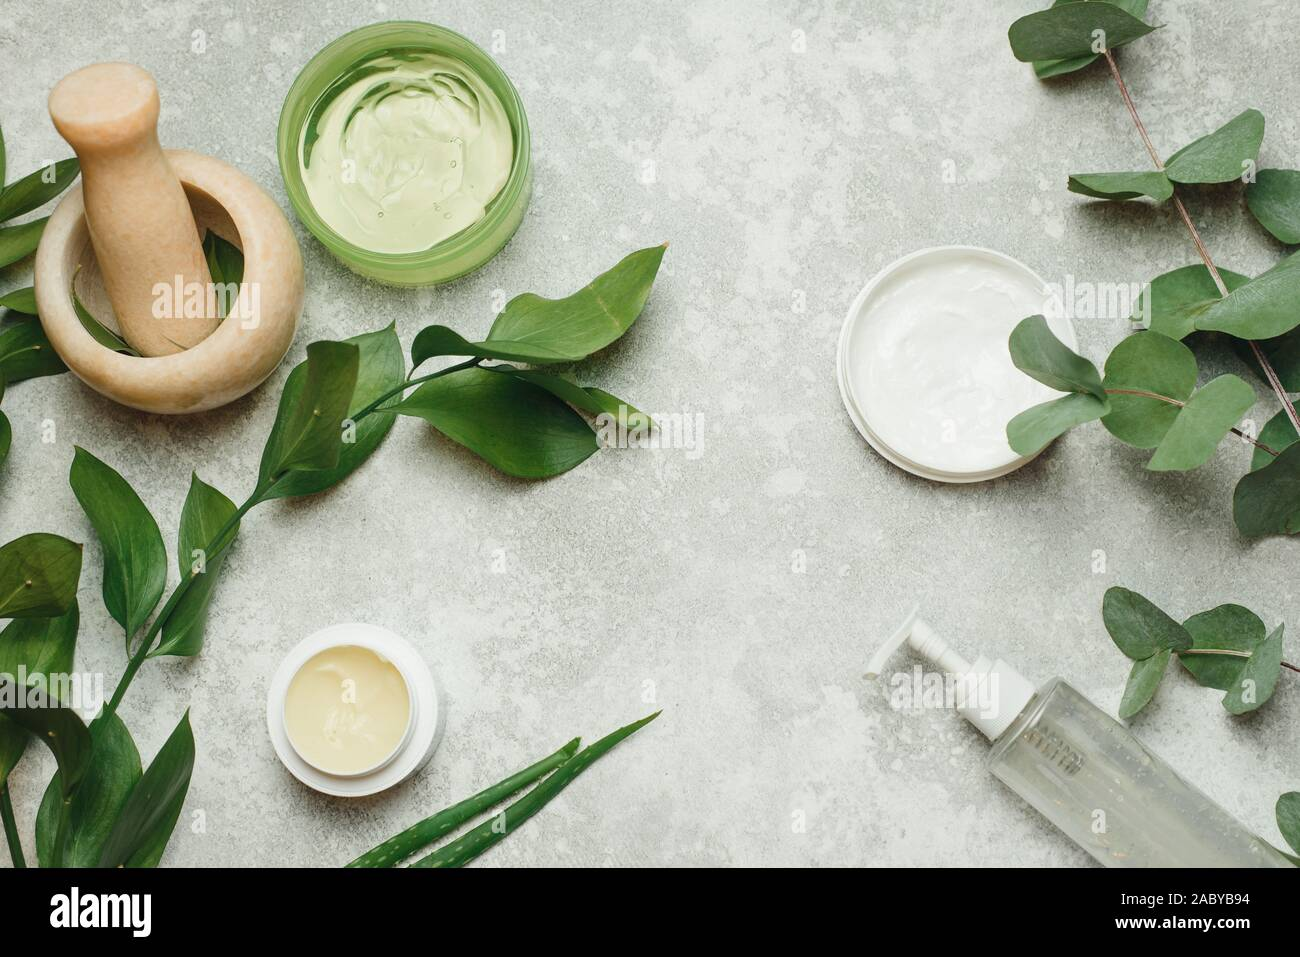 Flat Lay Composition With Cosmetic Products On Grey Background Natural Organic Botany Alternative Herb Medicine Natural Skin Care Beauty Products Stock Photo Alamy